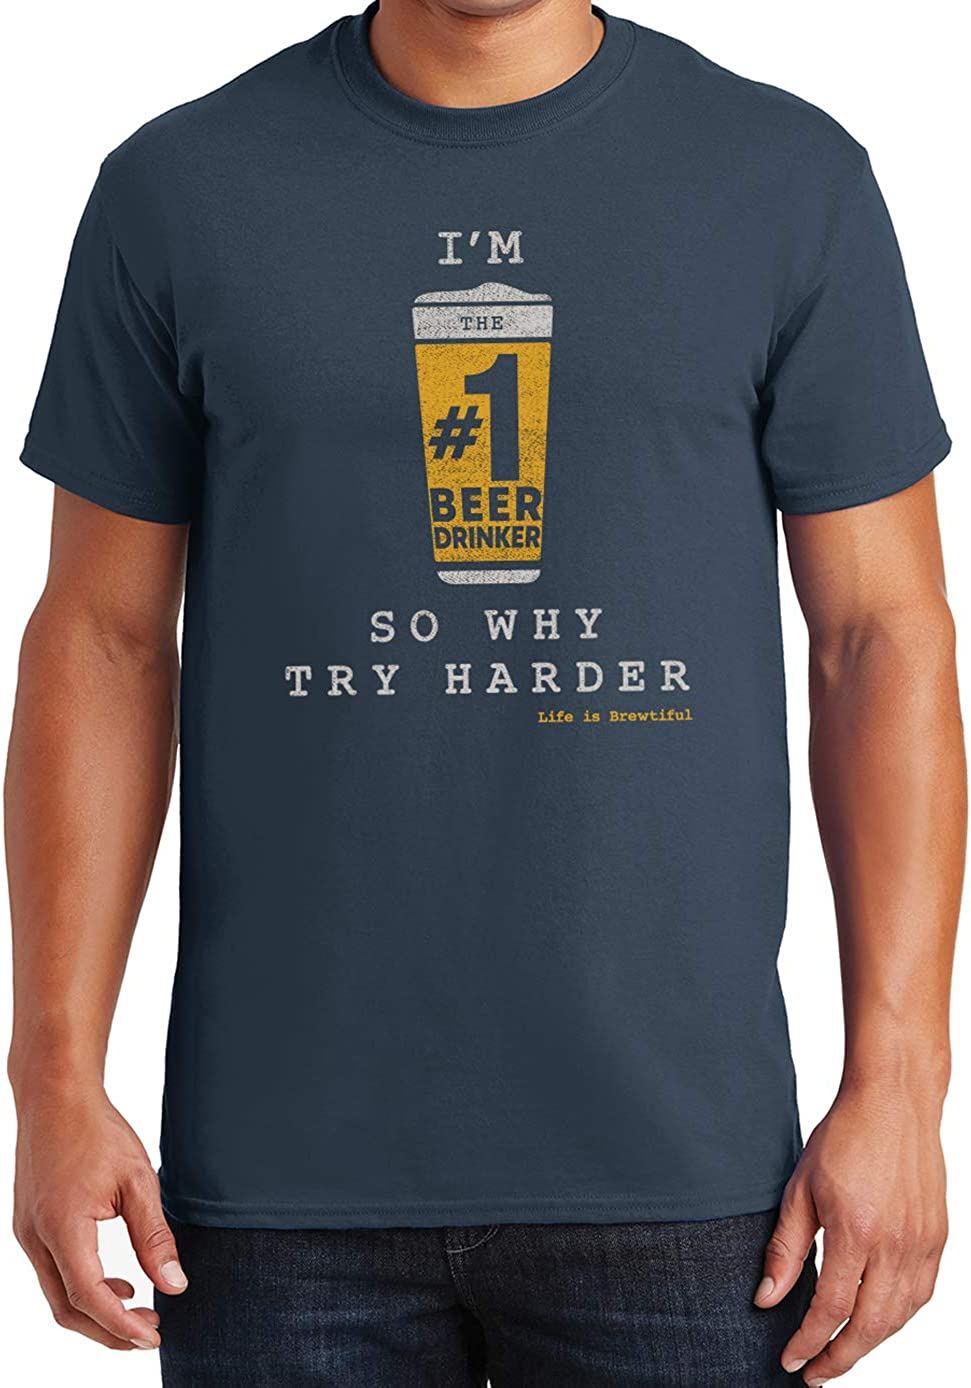 10oz apparel Life is Brewtiful Funny t Shirts for Men I'm #1 So Why Try Harder